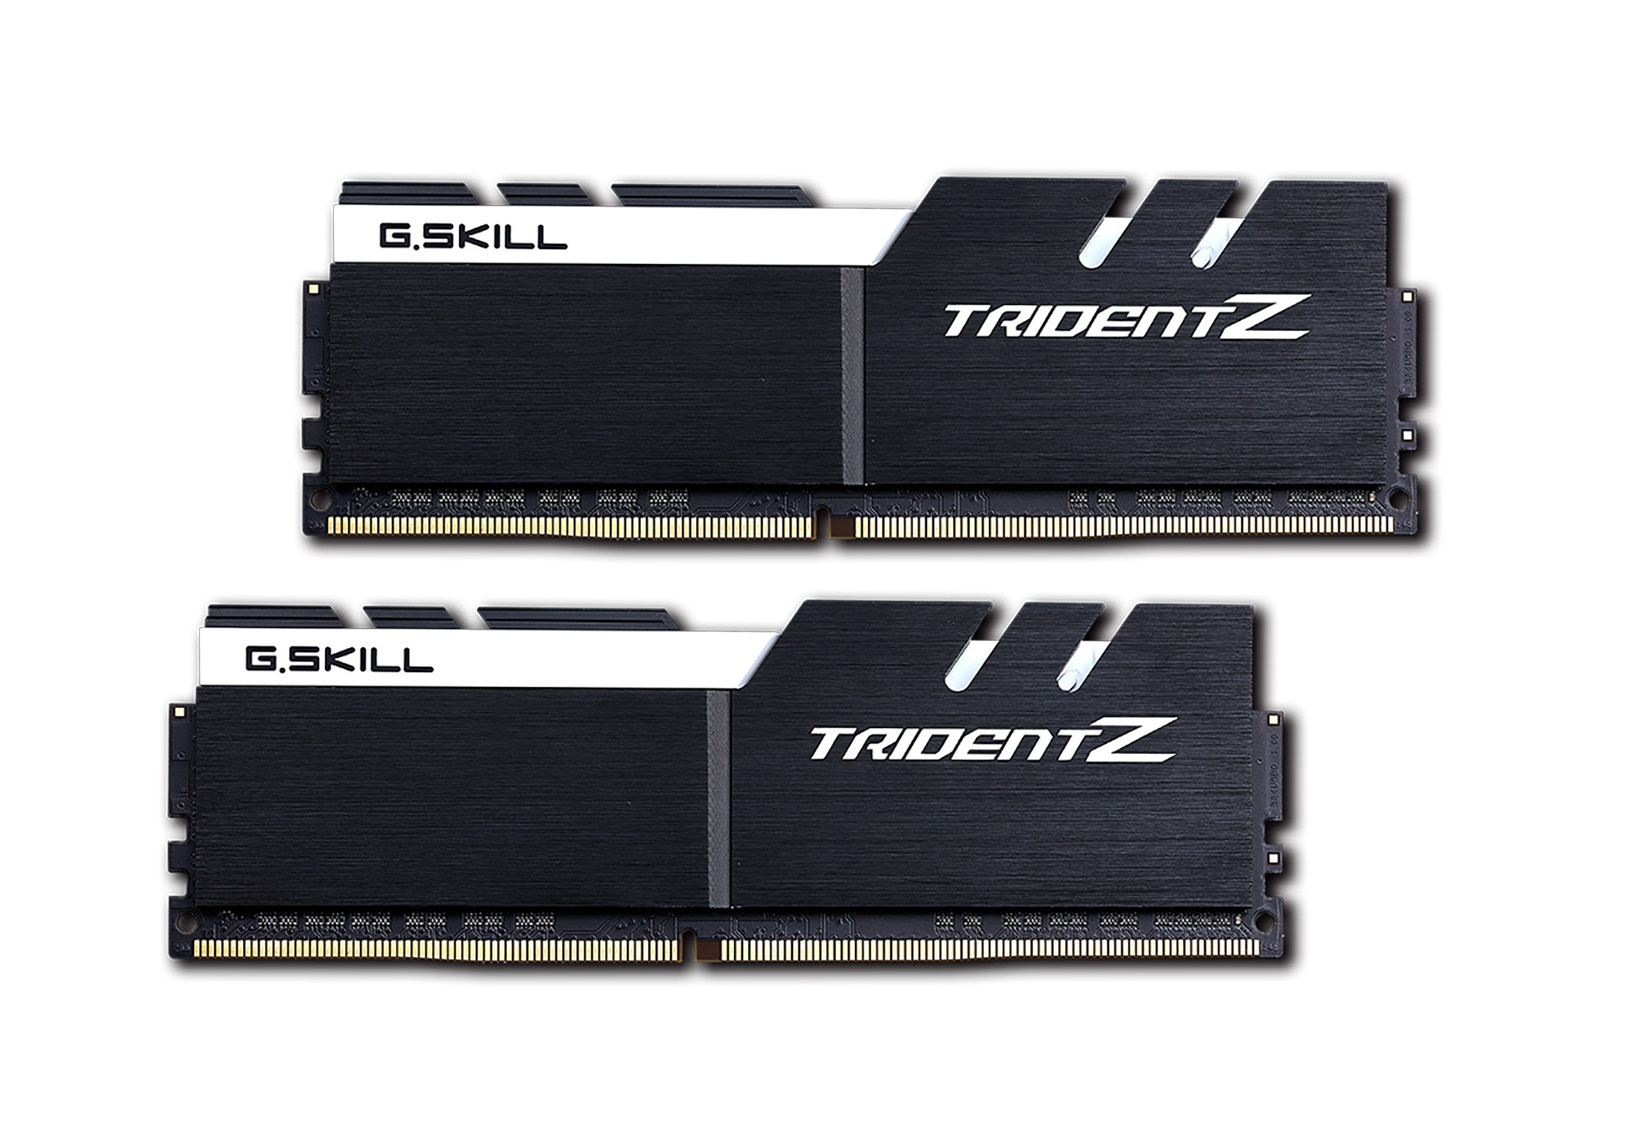 32GB G.Skill DDR4 Trident Z 3600Mhz PC4-28800 CL17 White/Black 1.35V Dual Channel Kit (2x16GB)